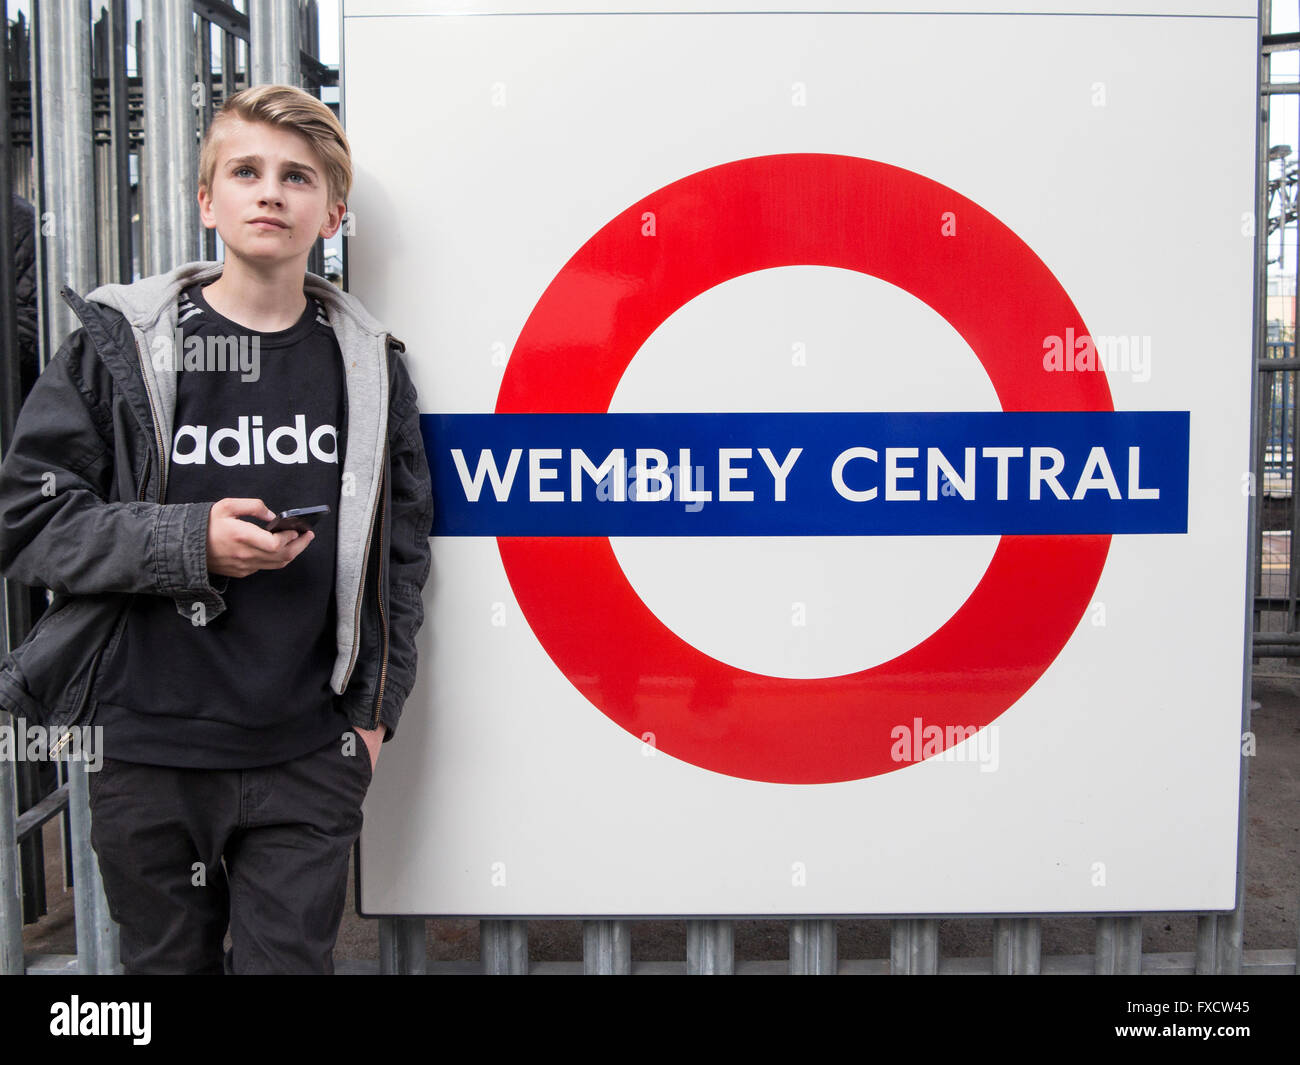 wembley central - Stock Image